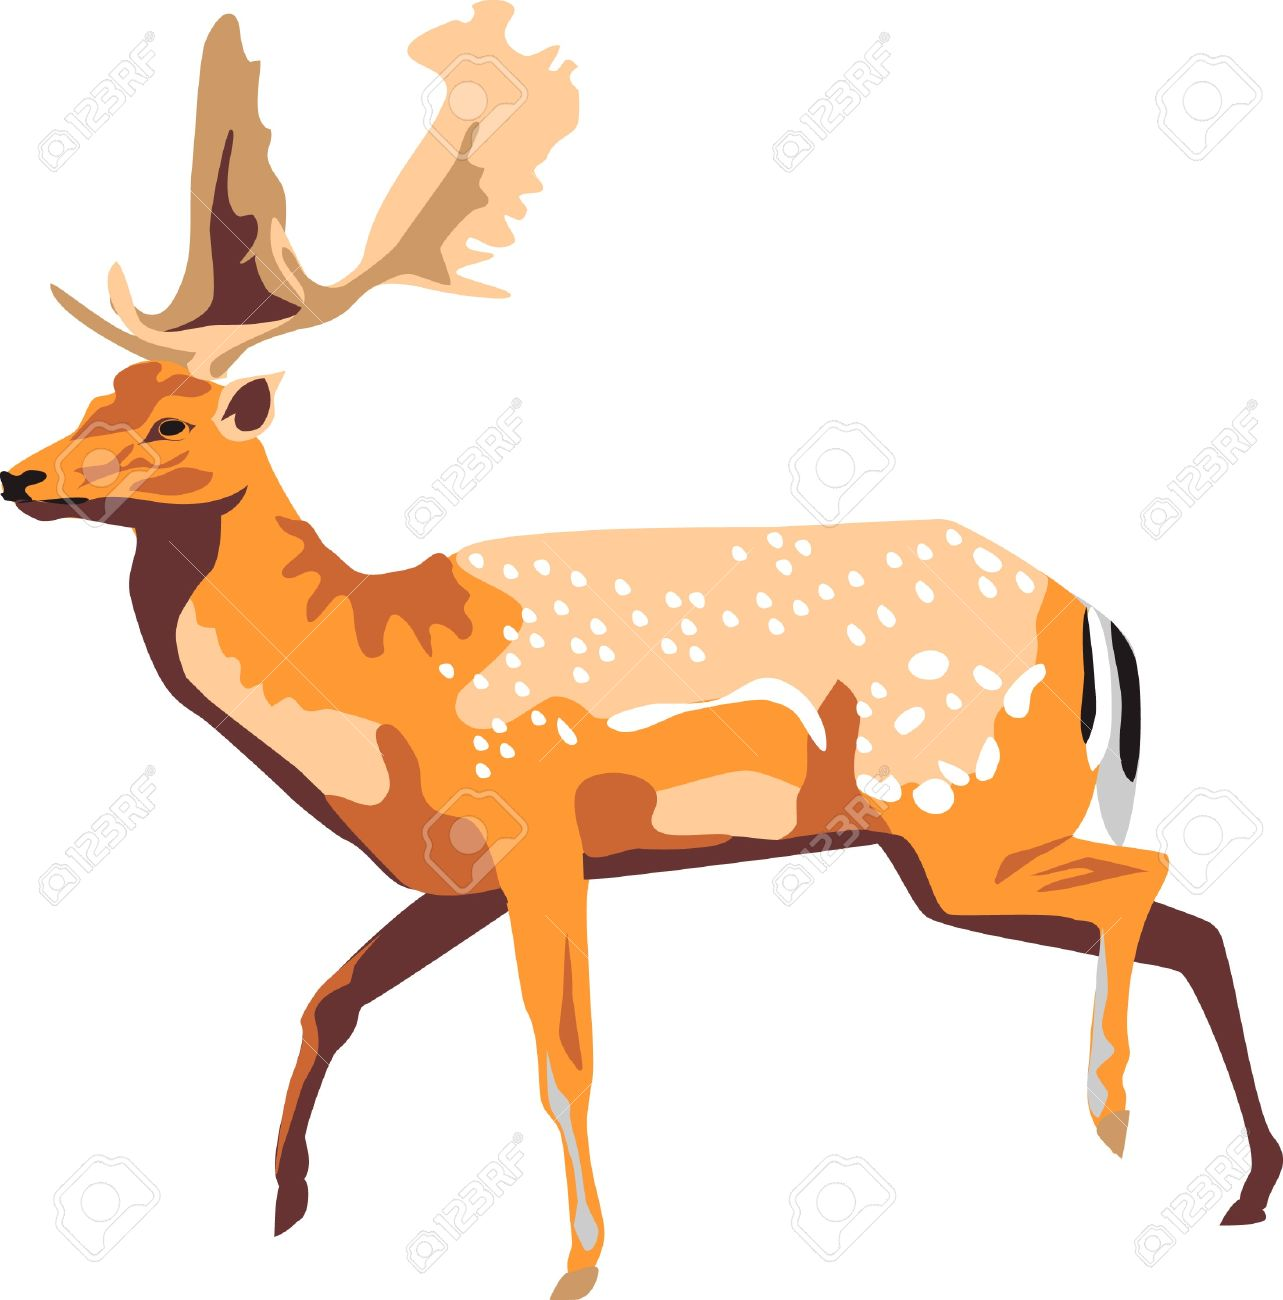 Deer Clipart at GetDrawings.com | Free for personal use Deer Clipart ...